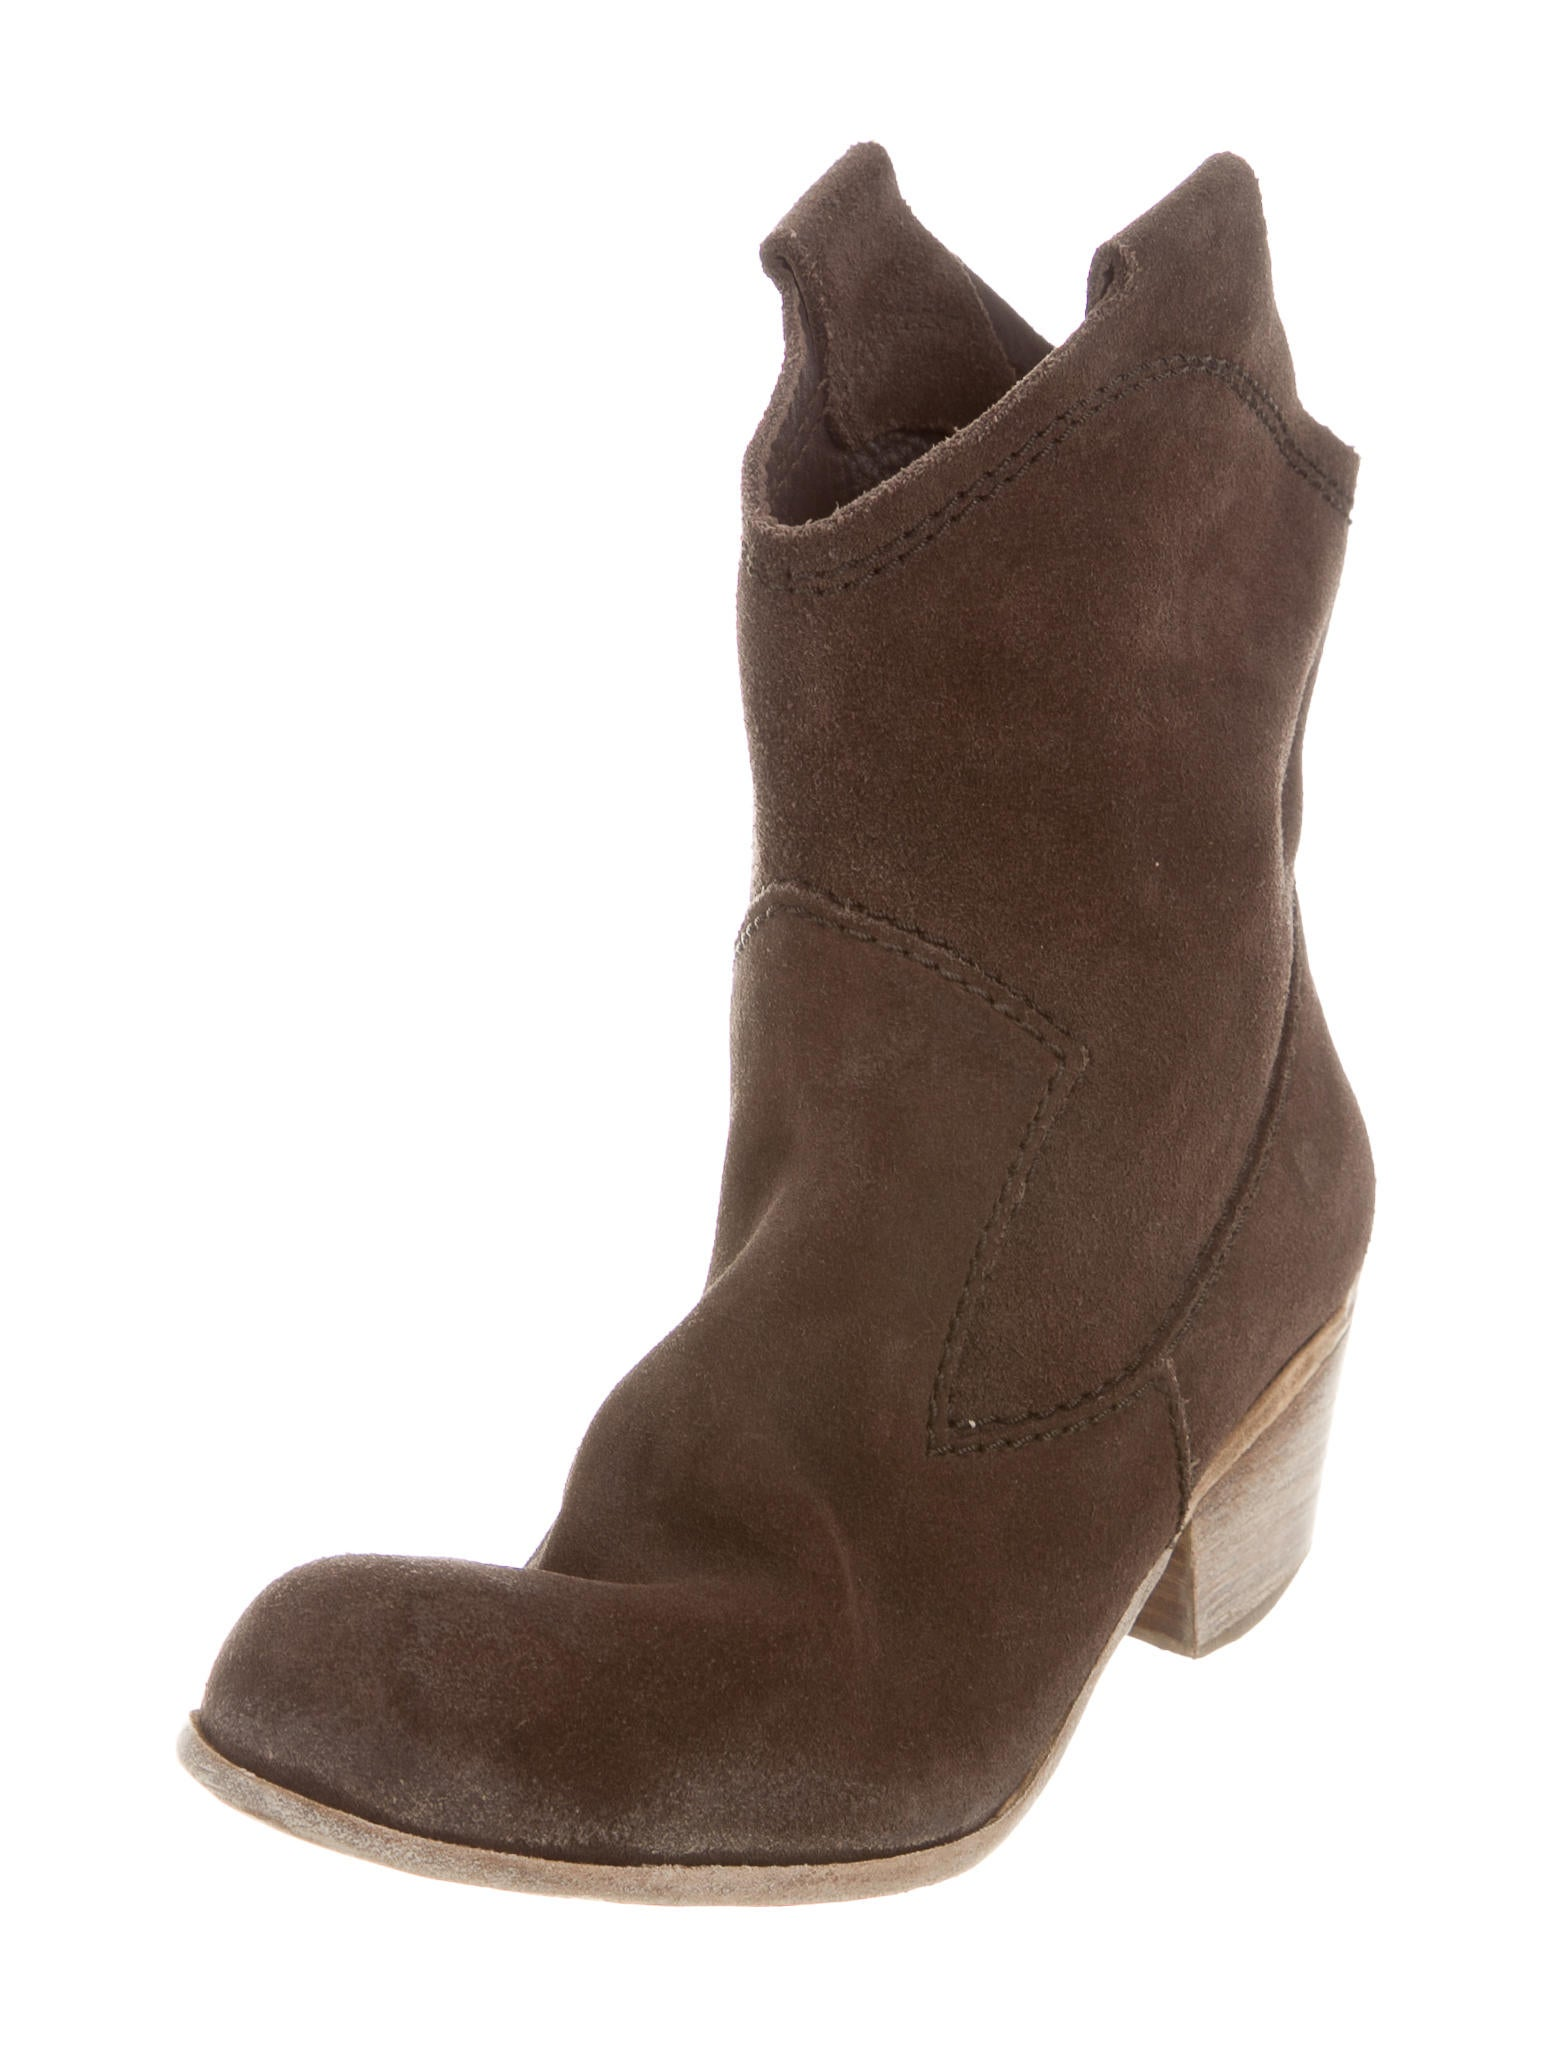 pedro garcia suede toe ankle boots shoes